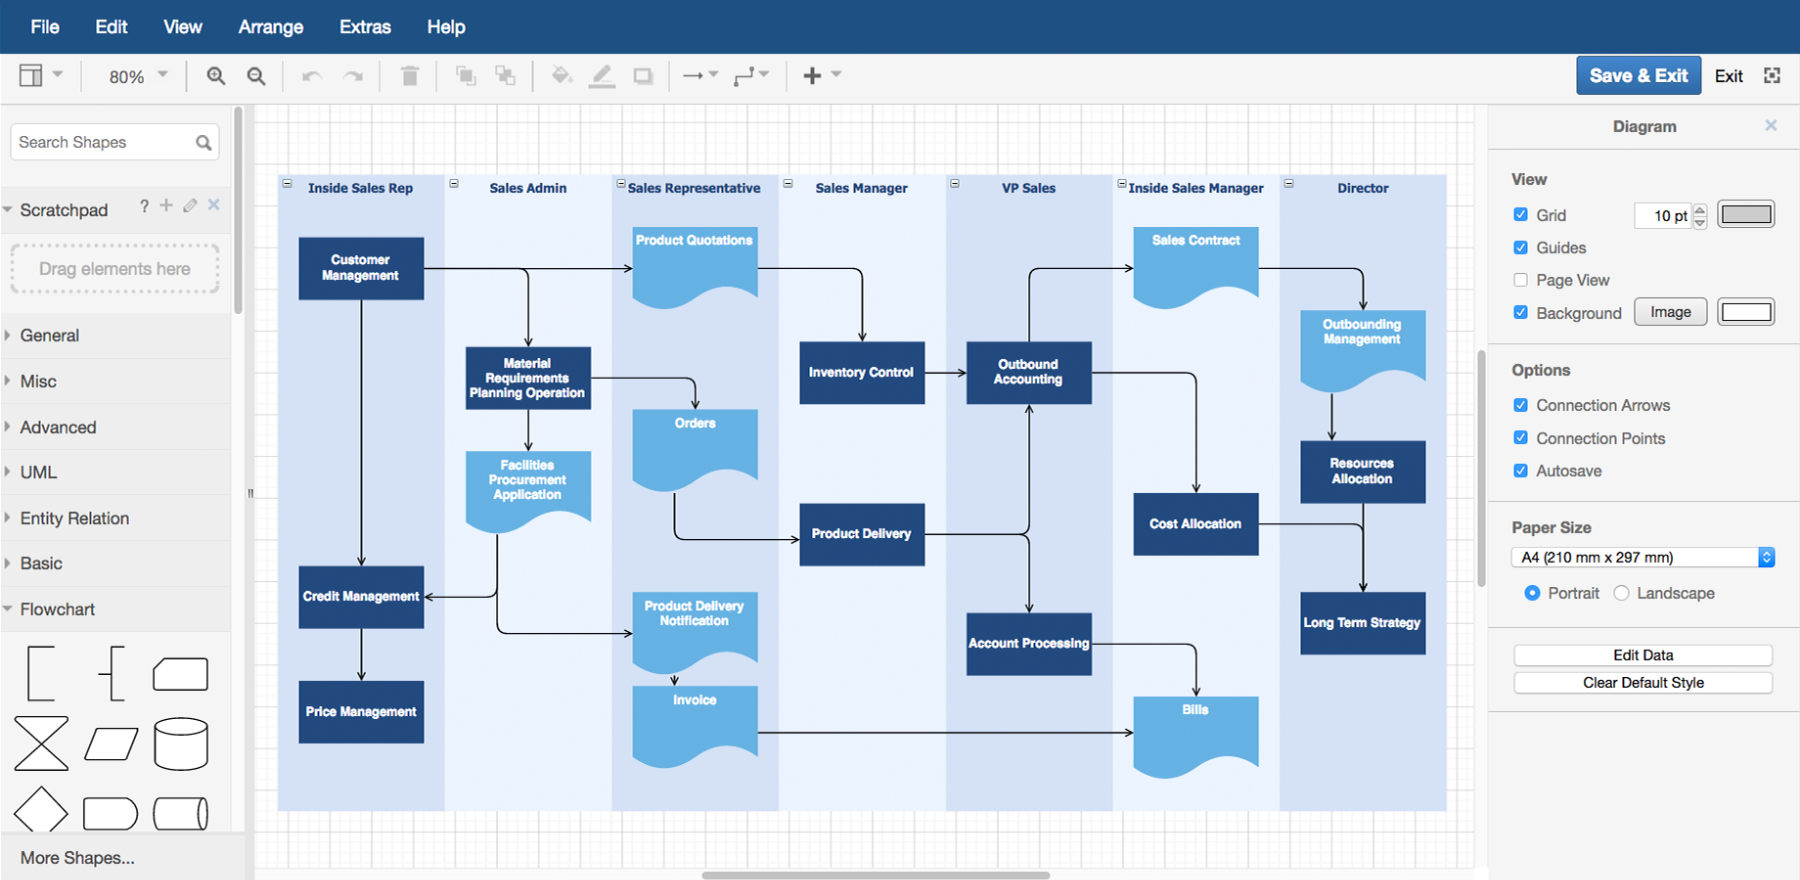 Create a process diagram in draw.io